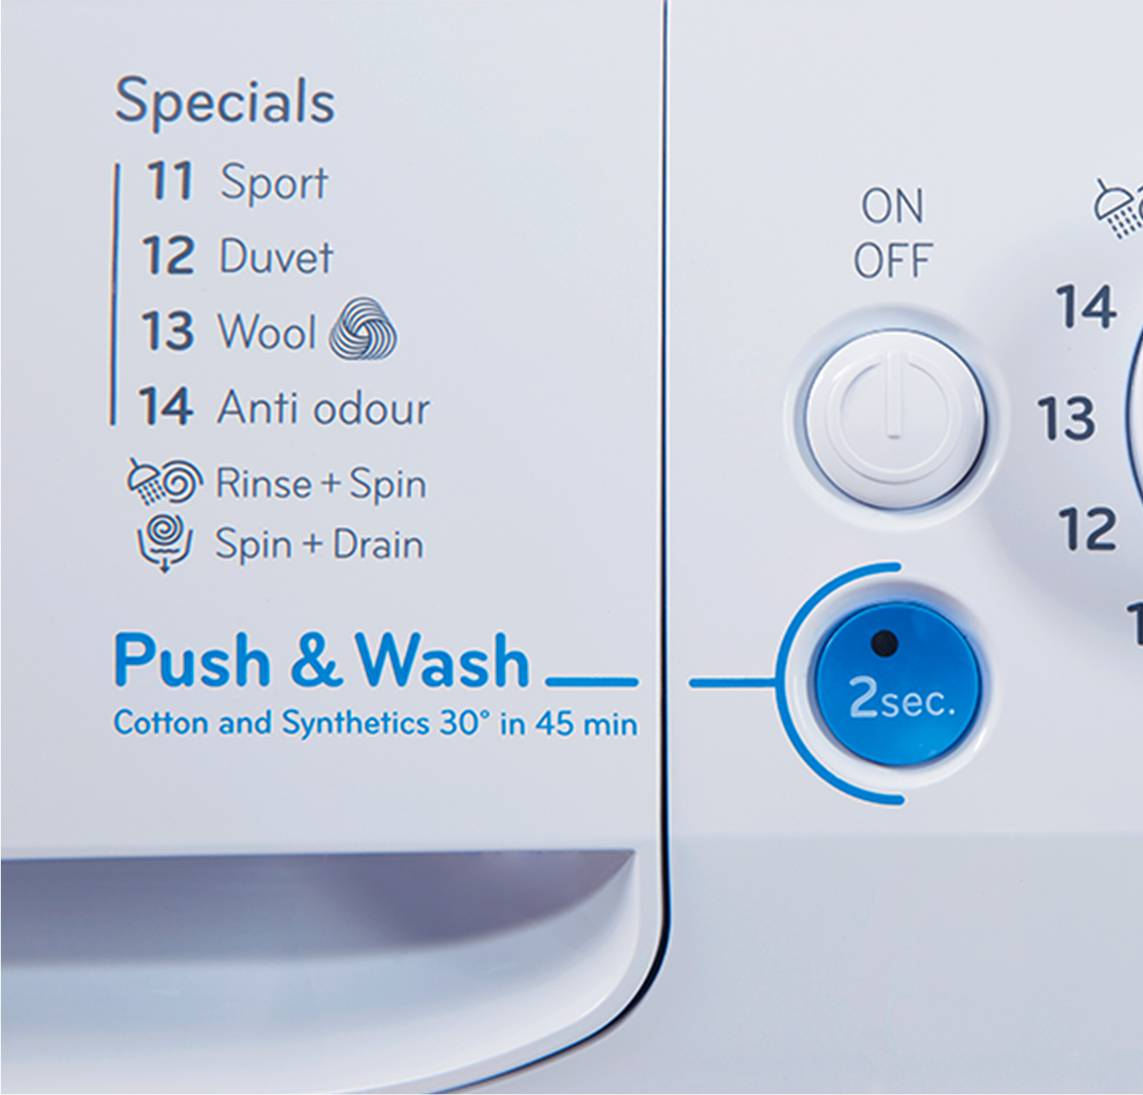 Freestanding front loading washing machine innex indesit one push of a button thats all it takes to turn your innex washing machine on set the programme and start the wash cycle in 45 minutes youll have buycottarizona Choice Image